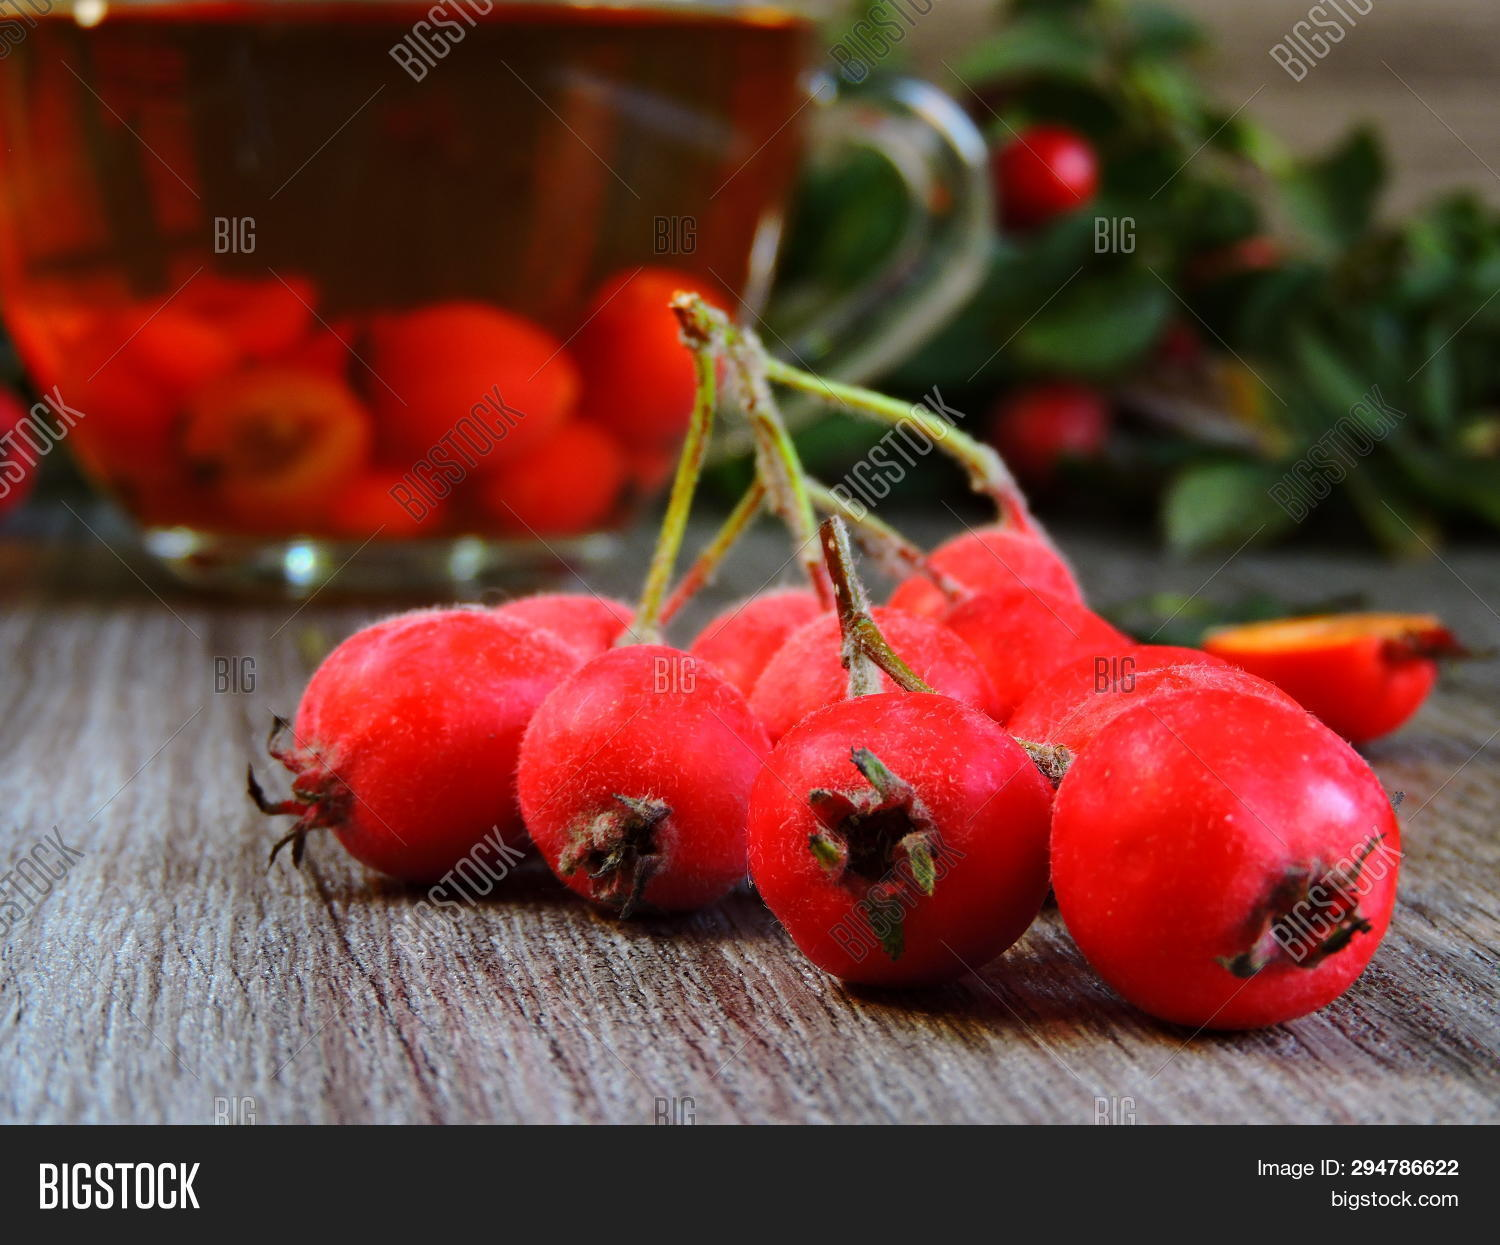 alternative,autumn,berry,branch,briar,china,cosmetics,cup,dog,dogrose,drink,eating,fruit,glass,hawthorn,health,herb,herbal,hips,homeopathy,hot,medicine,nutrition,organic,plant,recipe,ripe,rose,rosehip,tea,therapy,top,traditional,useful,view,vitamin